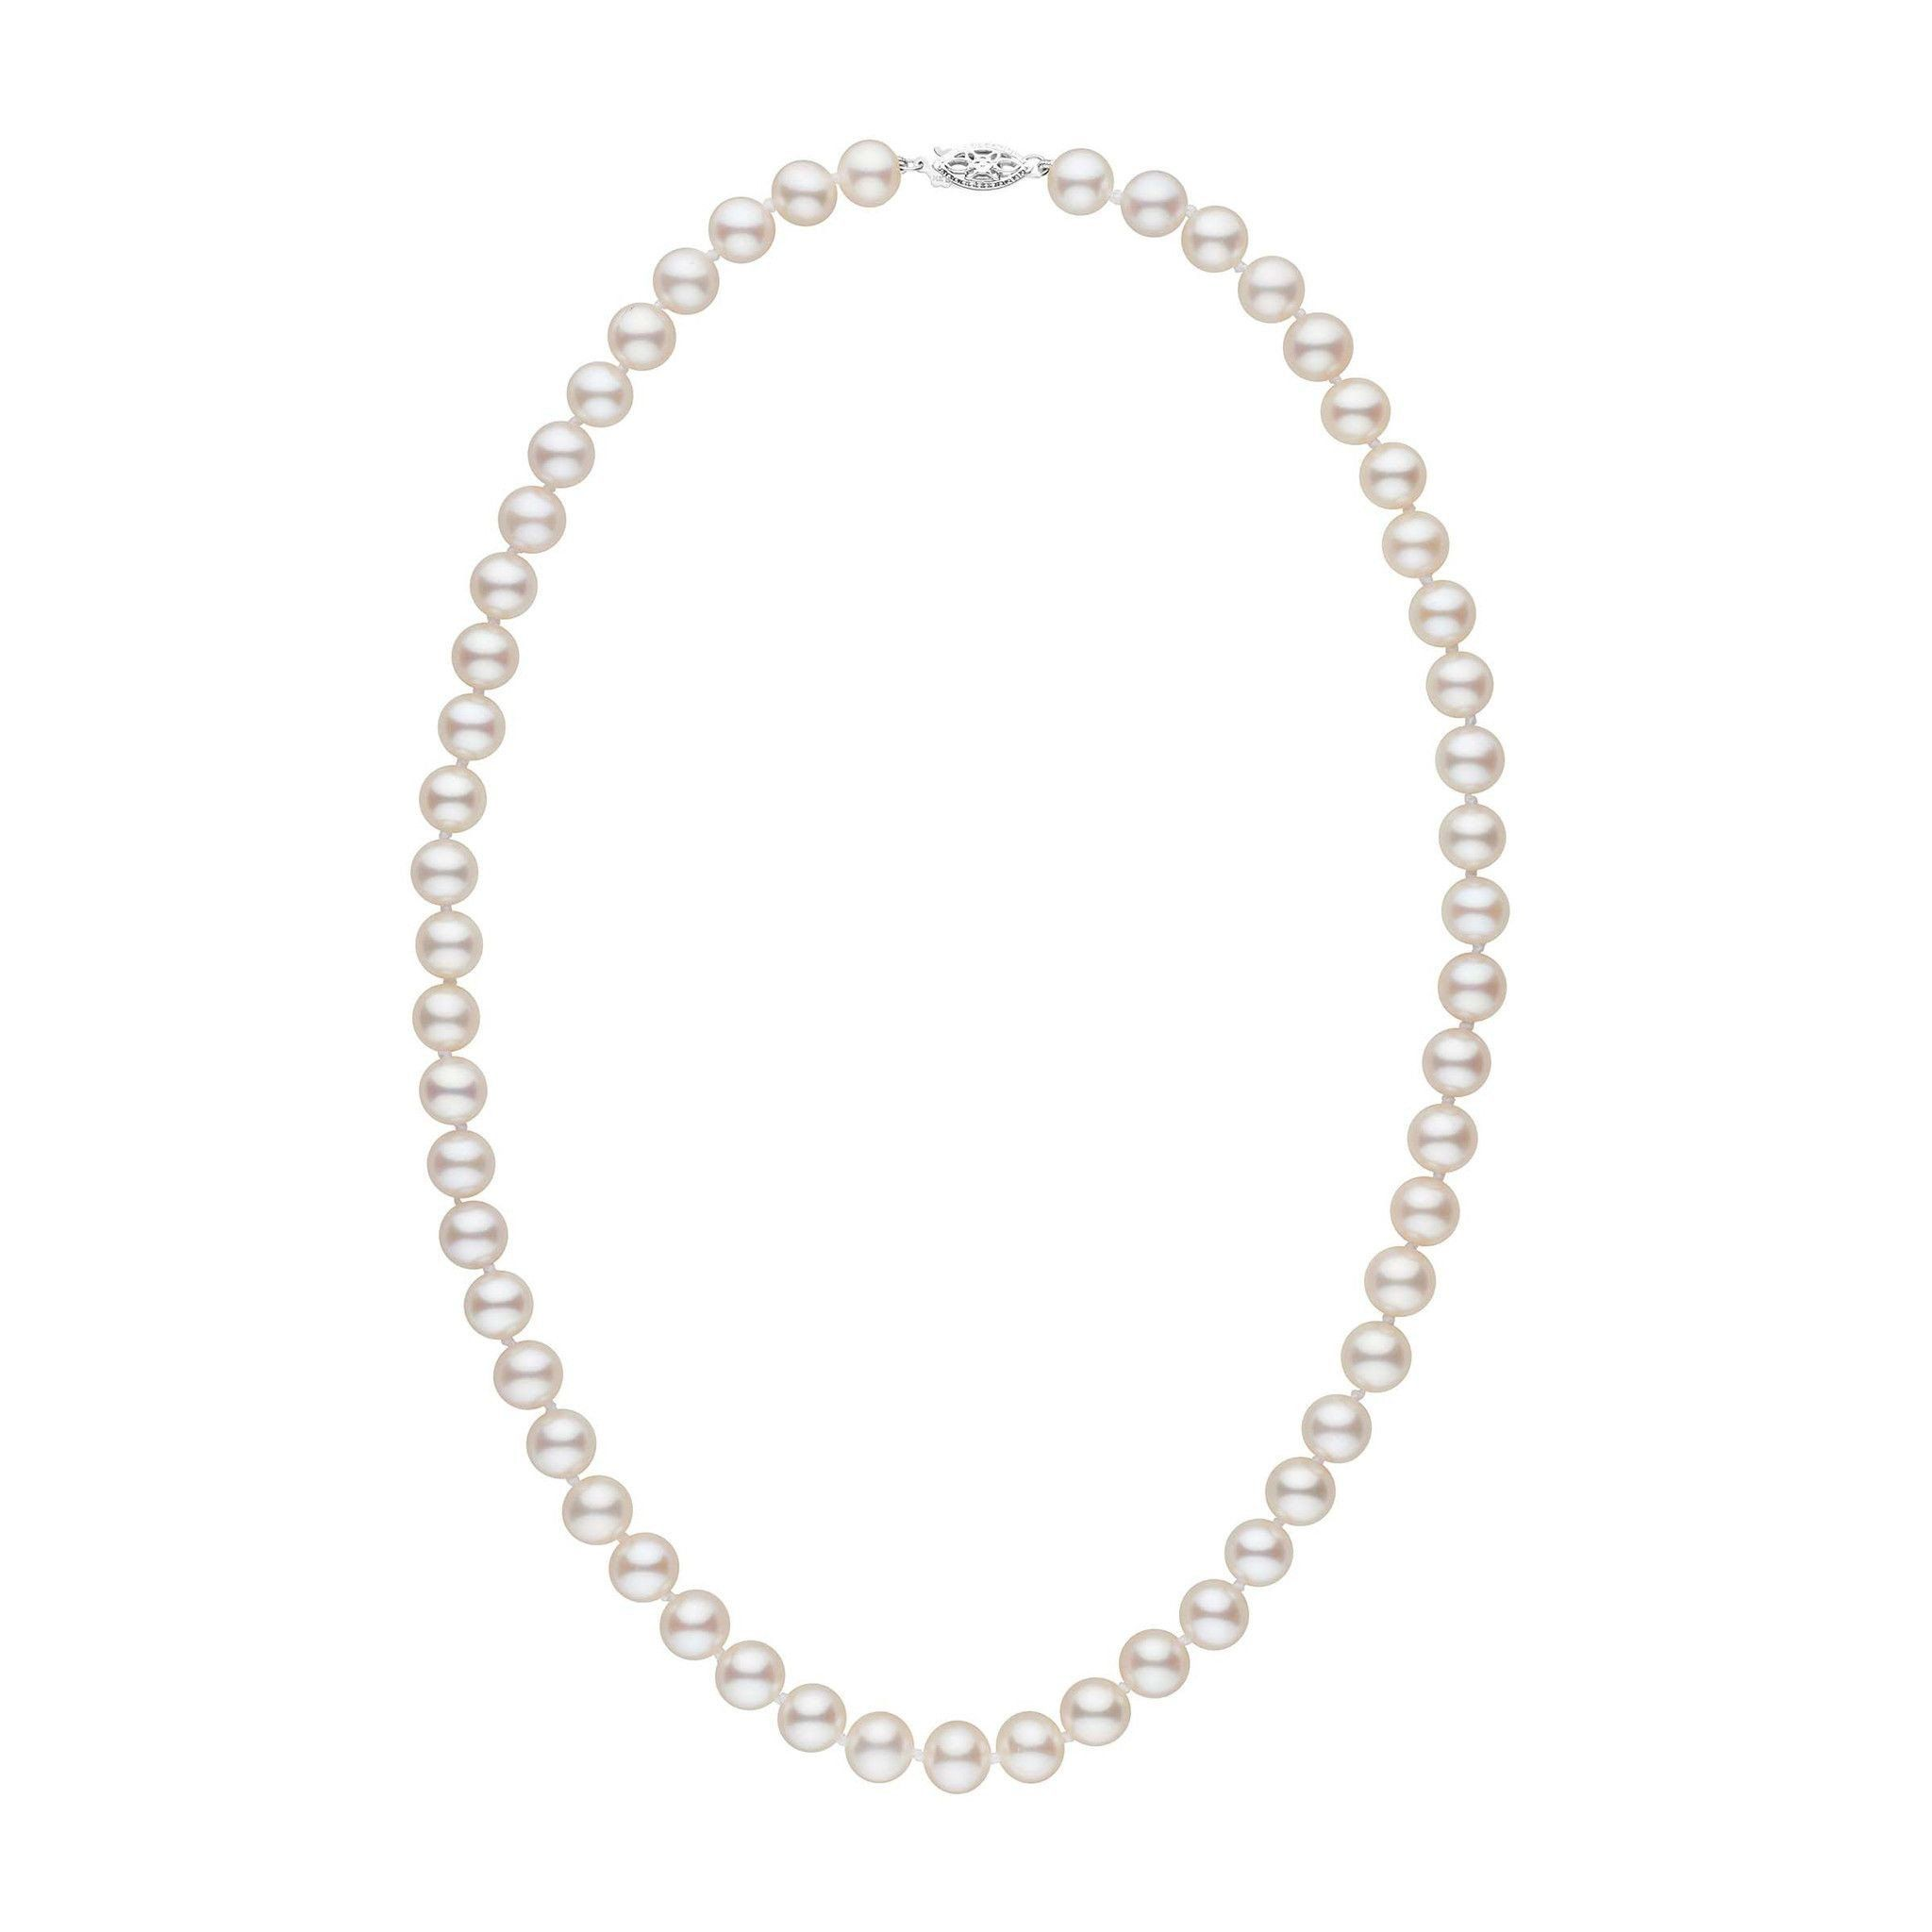 7.5-8.0 mm 18 Inch AA+ White Freshwater Pearl Necklace